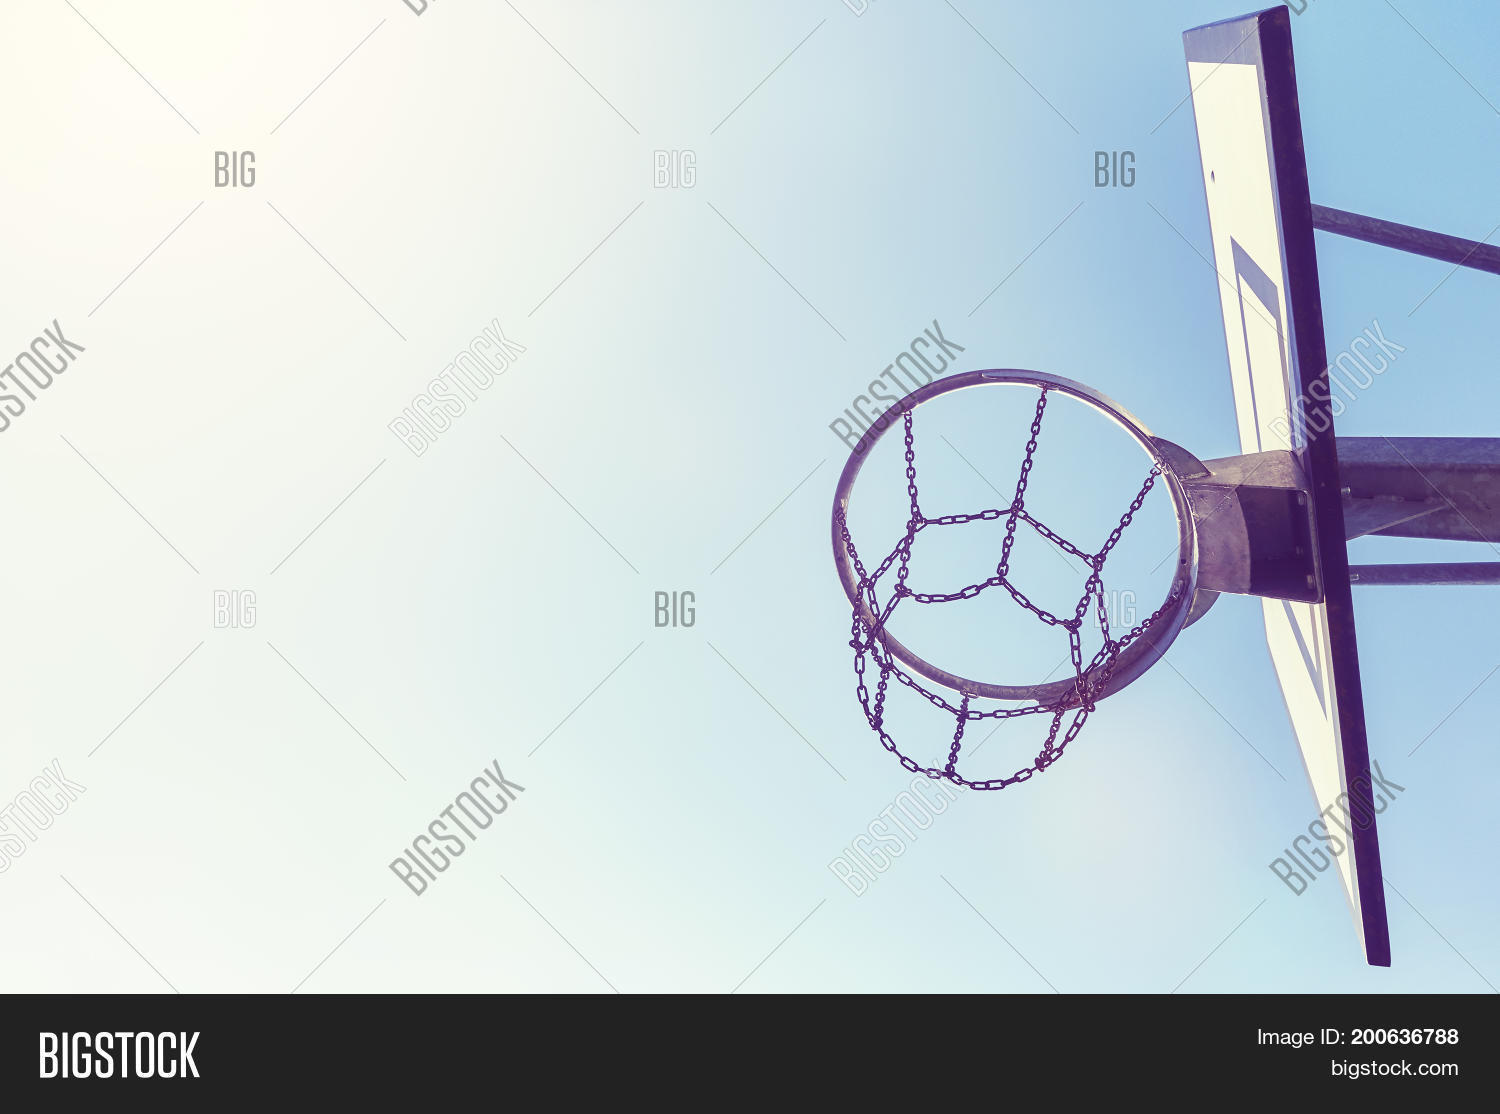 Basketball Hoop Chain Image Photo Free Trial Bigstock Diagram With Net At Sunset